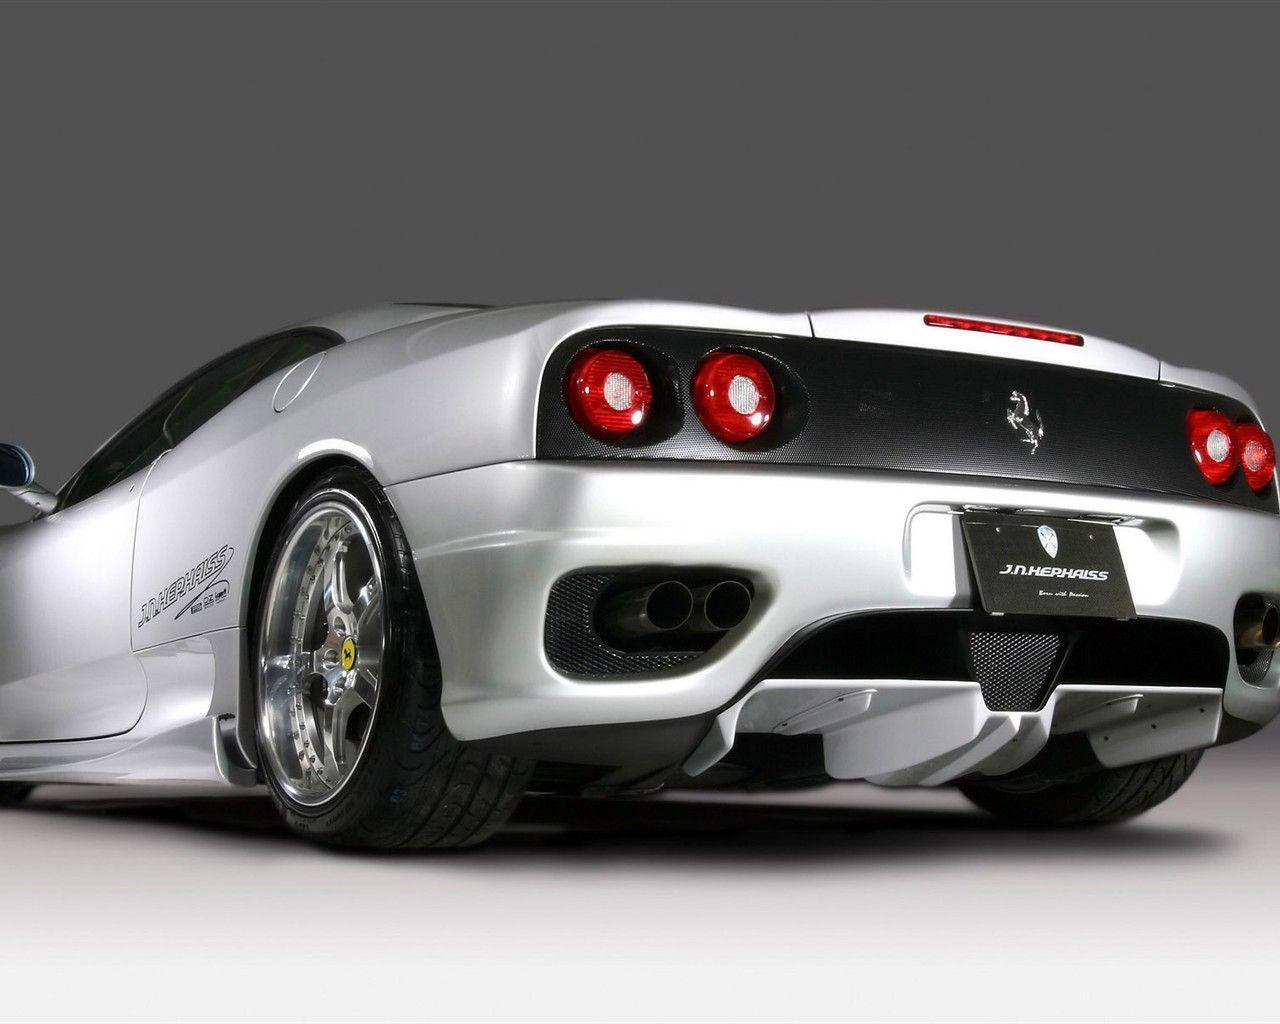 White Ferrari F430 Wallpapers and Backgrounds